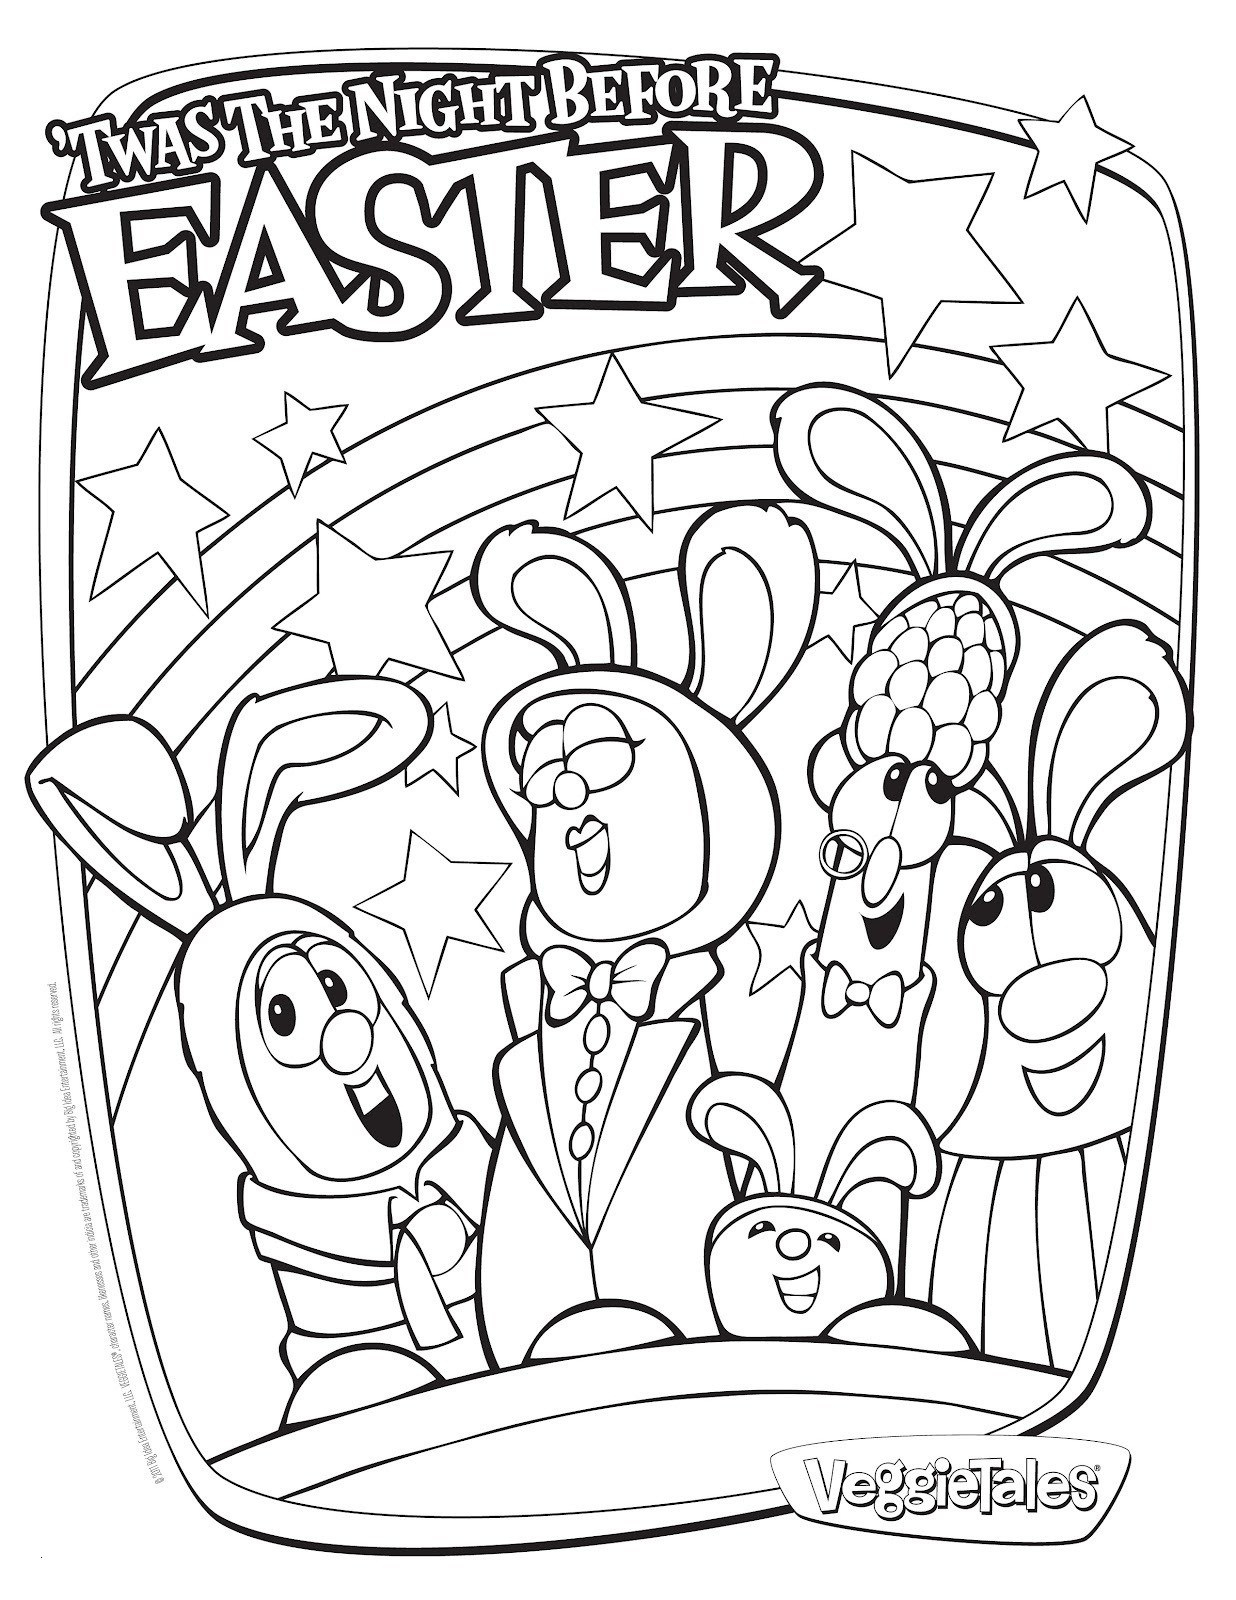 free religious coloring pages Collection-Free Bible Coloring Pages to Print Free Religious Coloring Pages Luxury Christian Coloring Book for 14-r